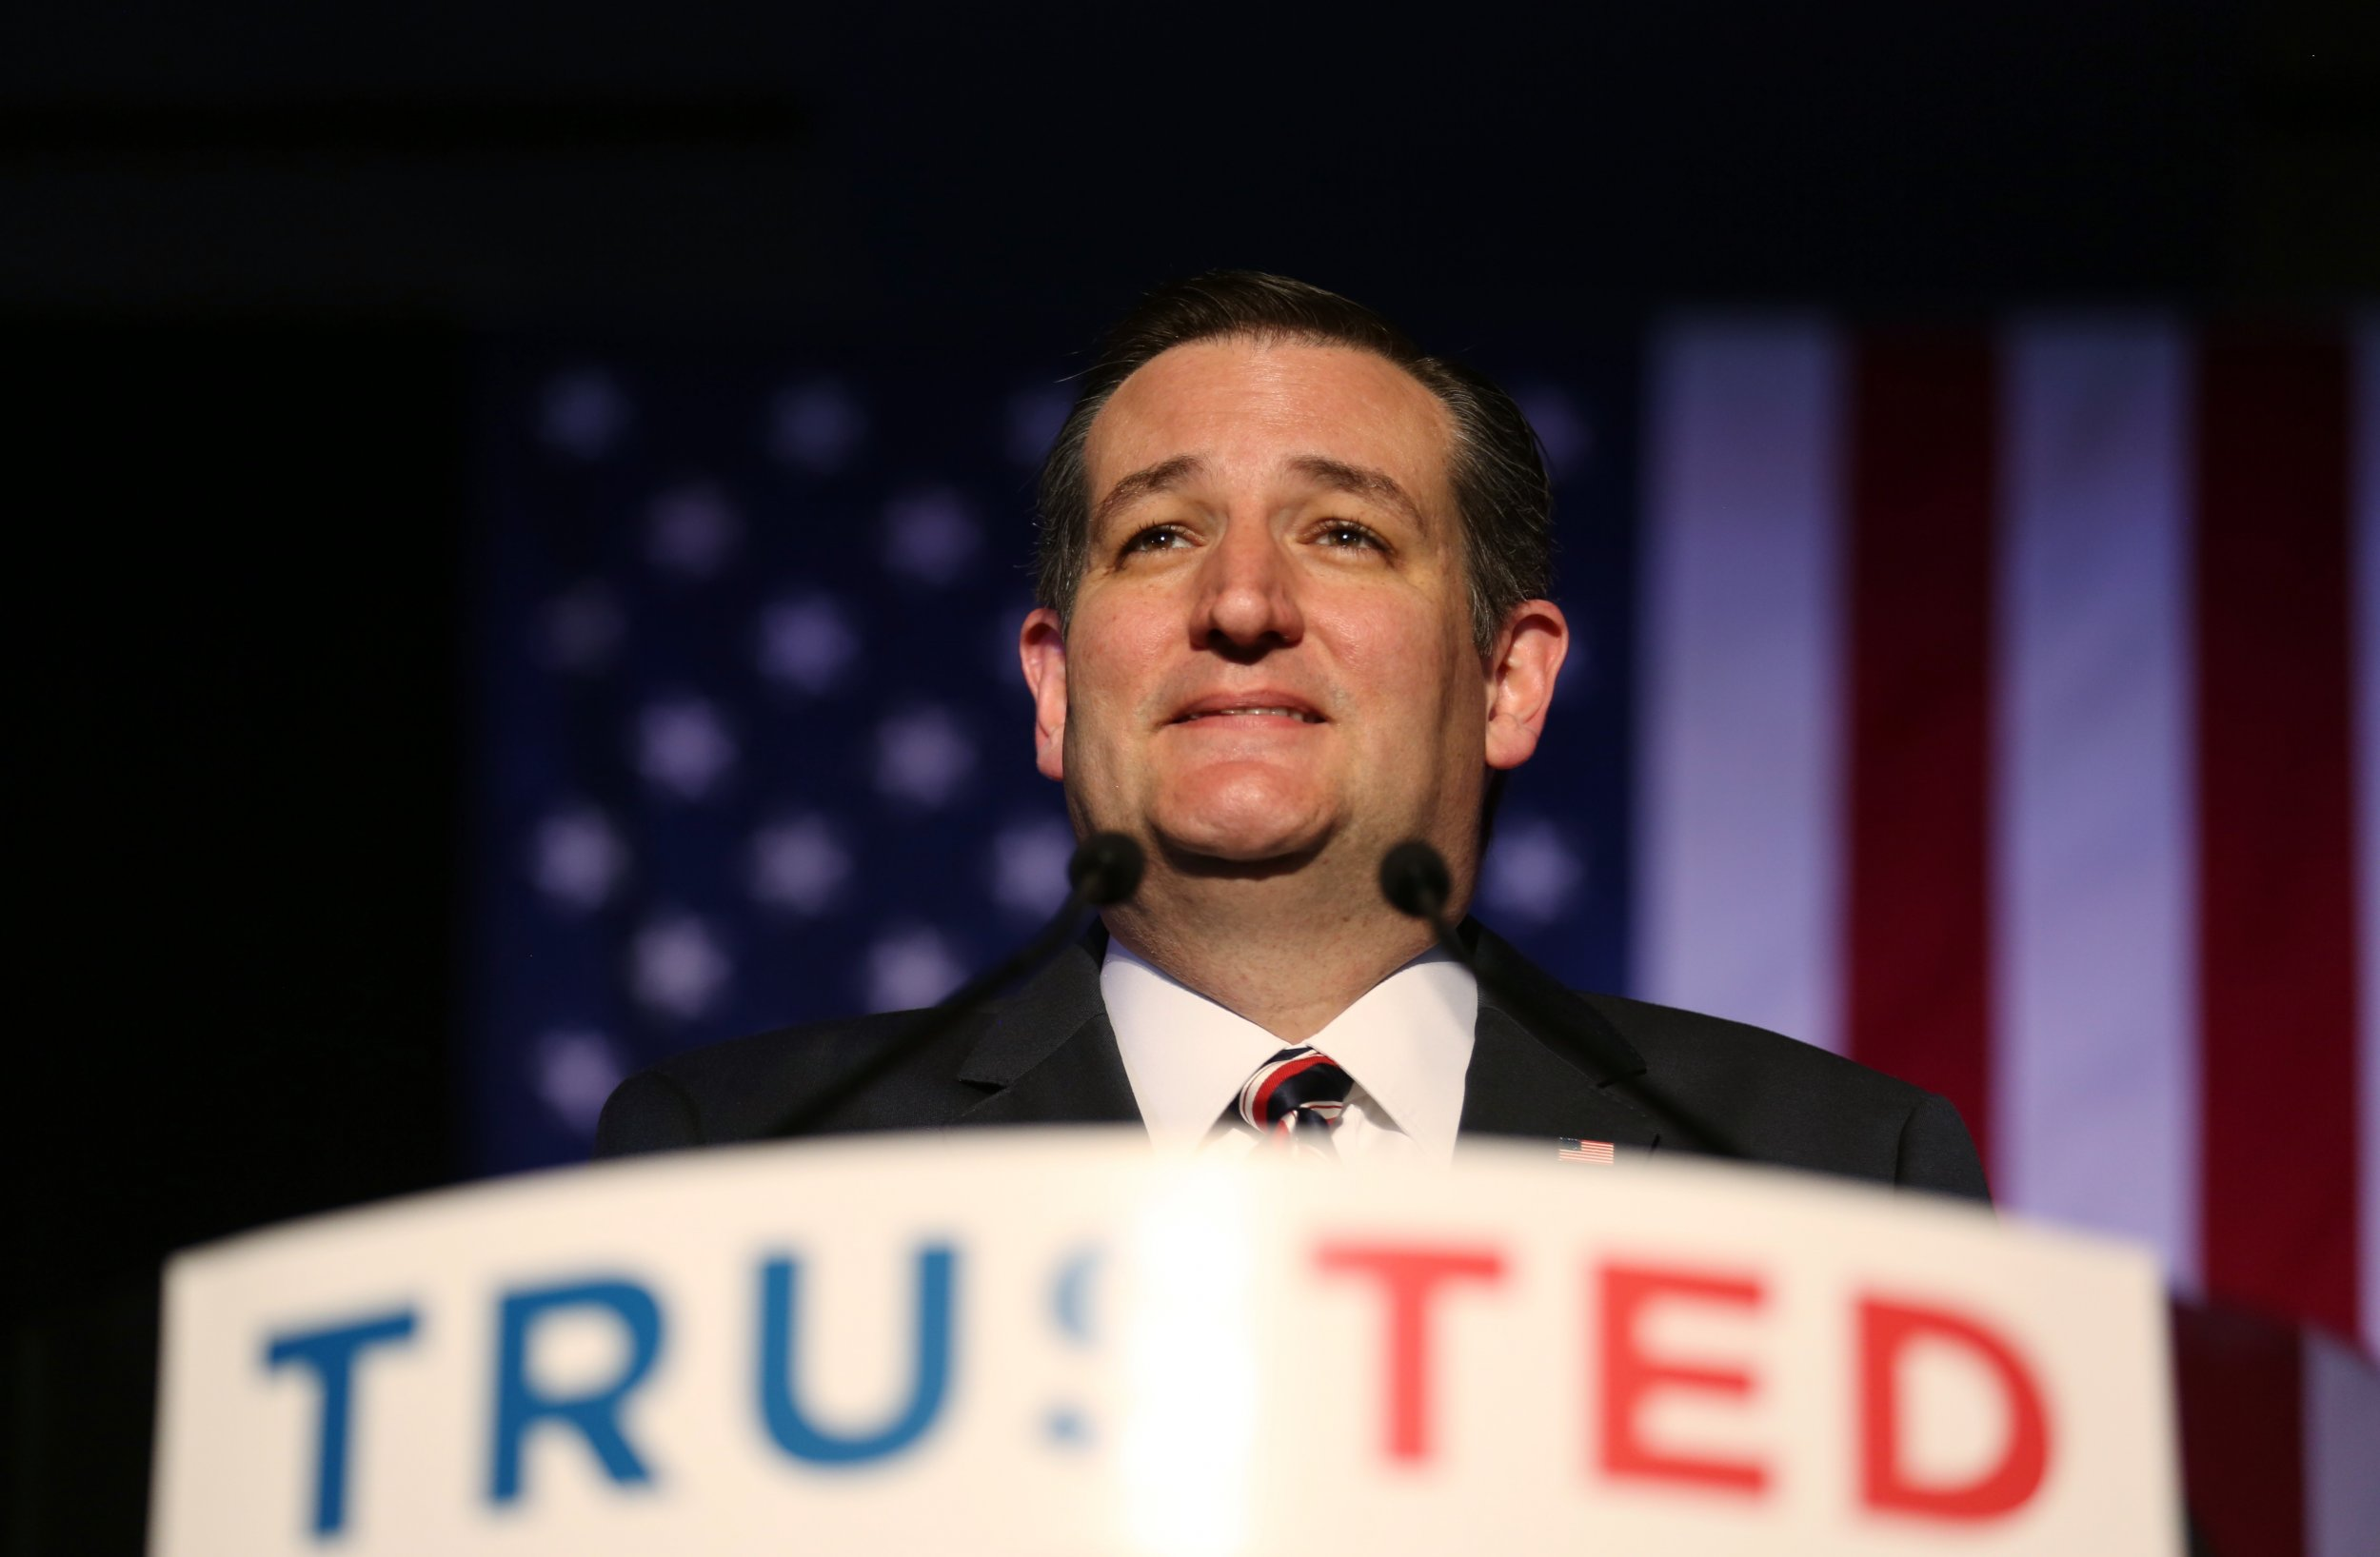 0317_Ted_Cruz_national_security_coalition_01